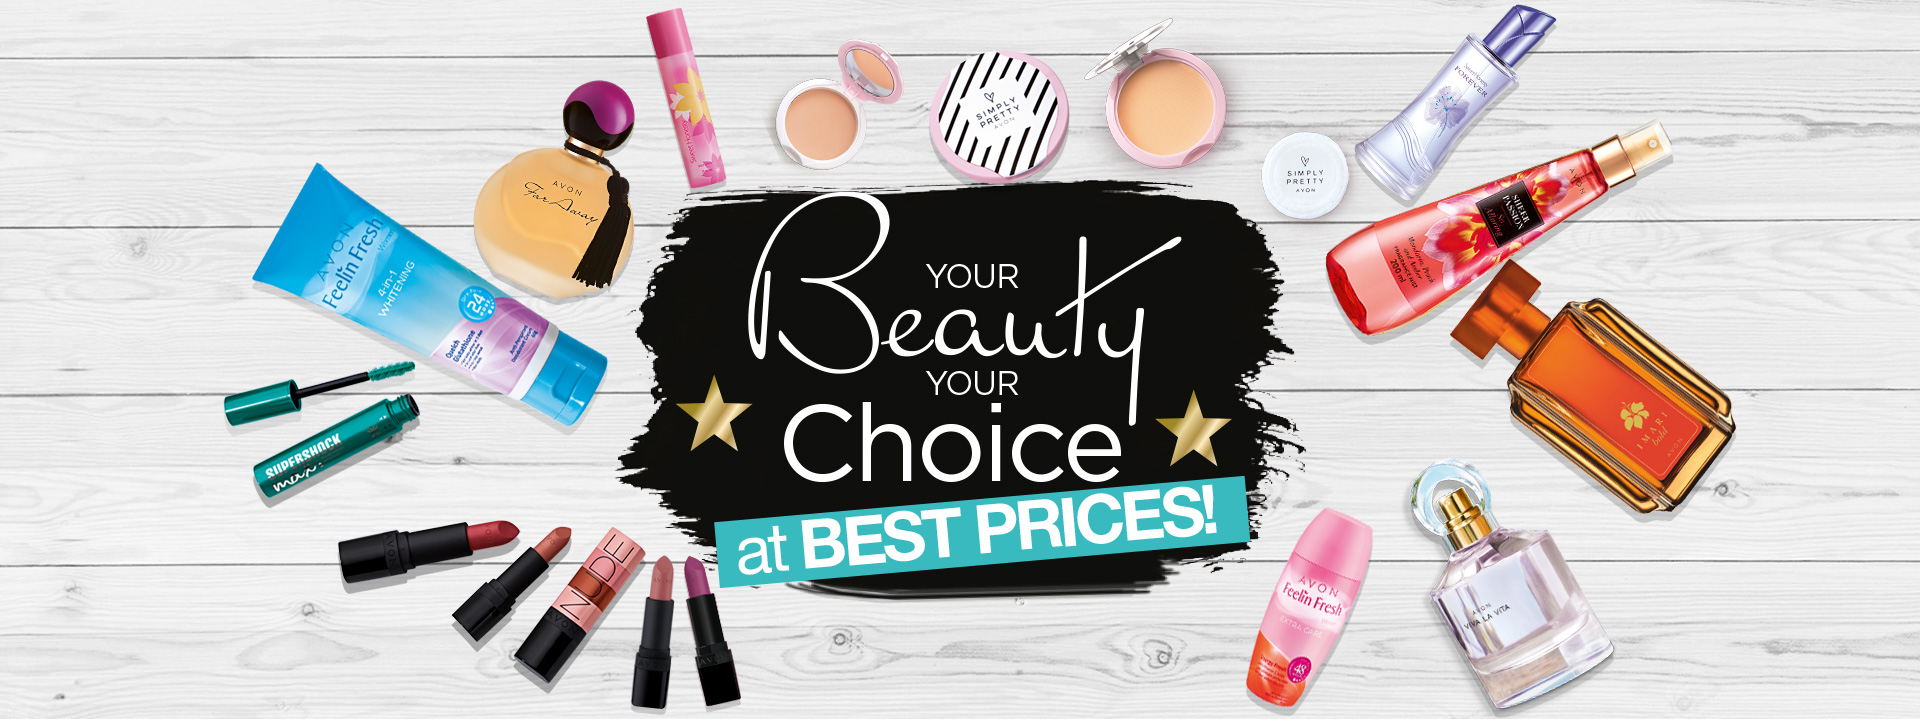 Your Beauty Your Choice at Best Prices